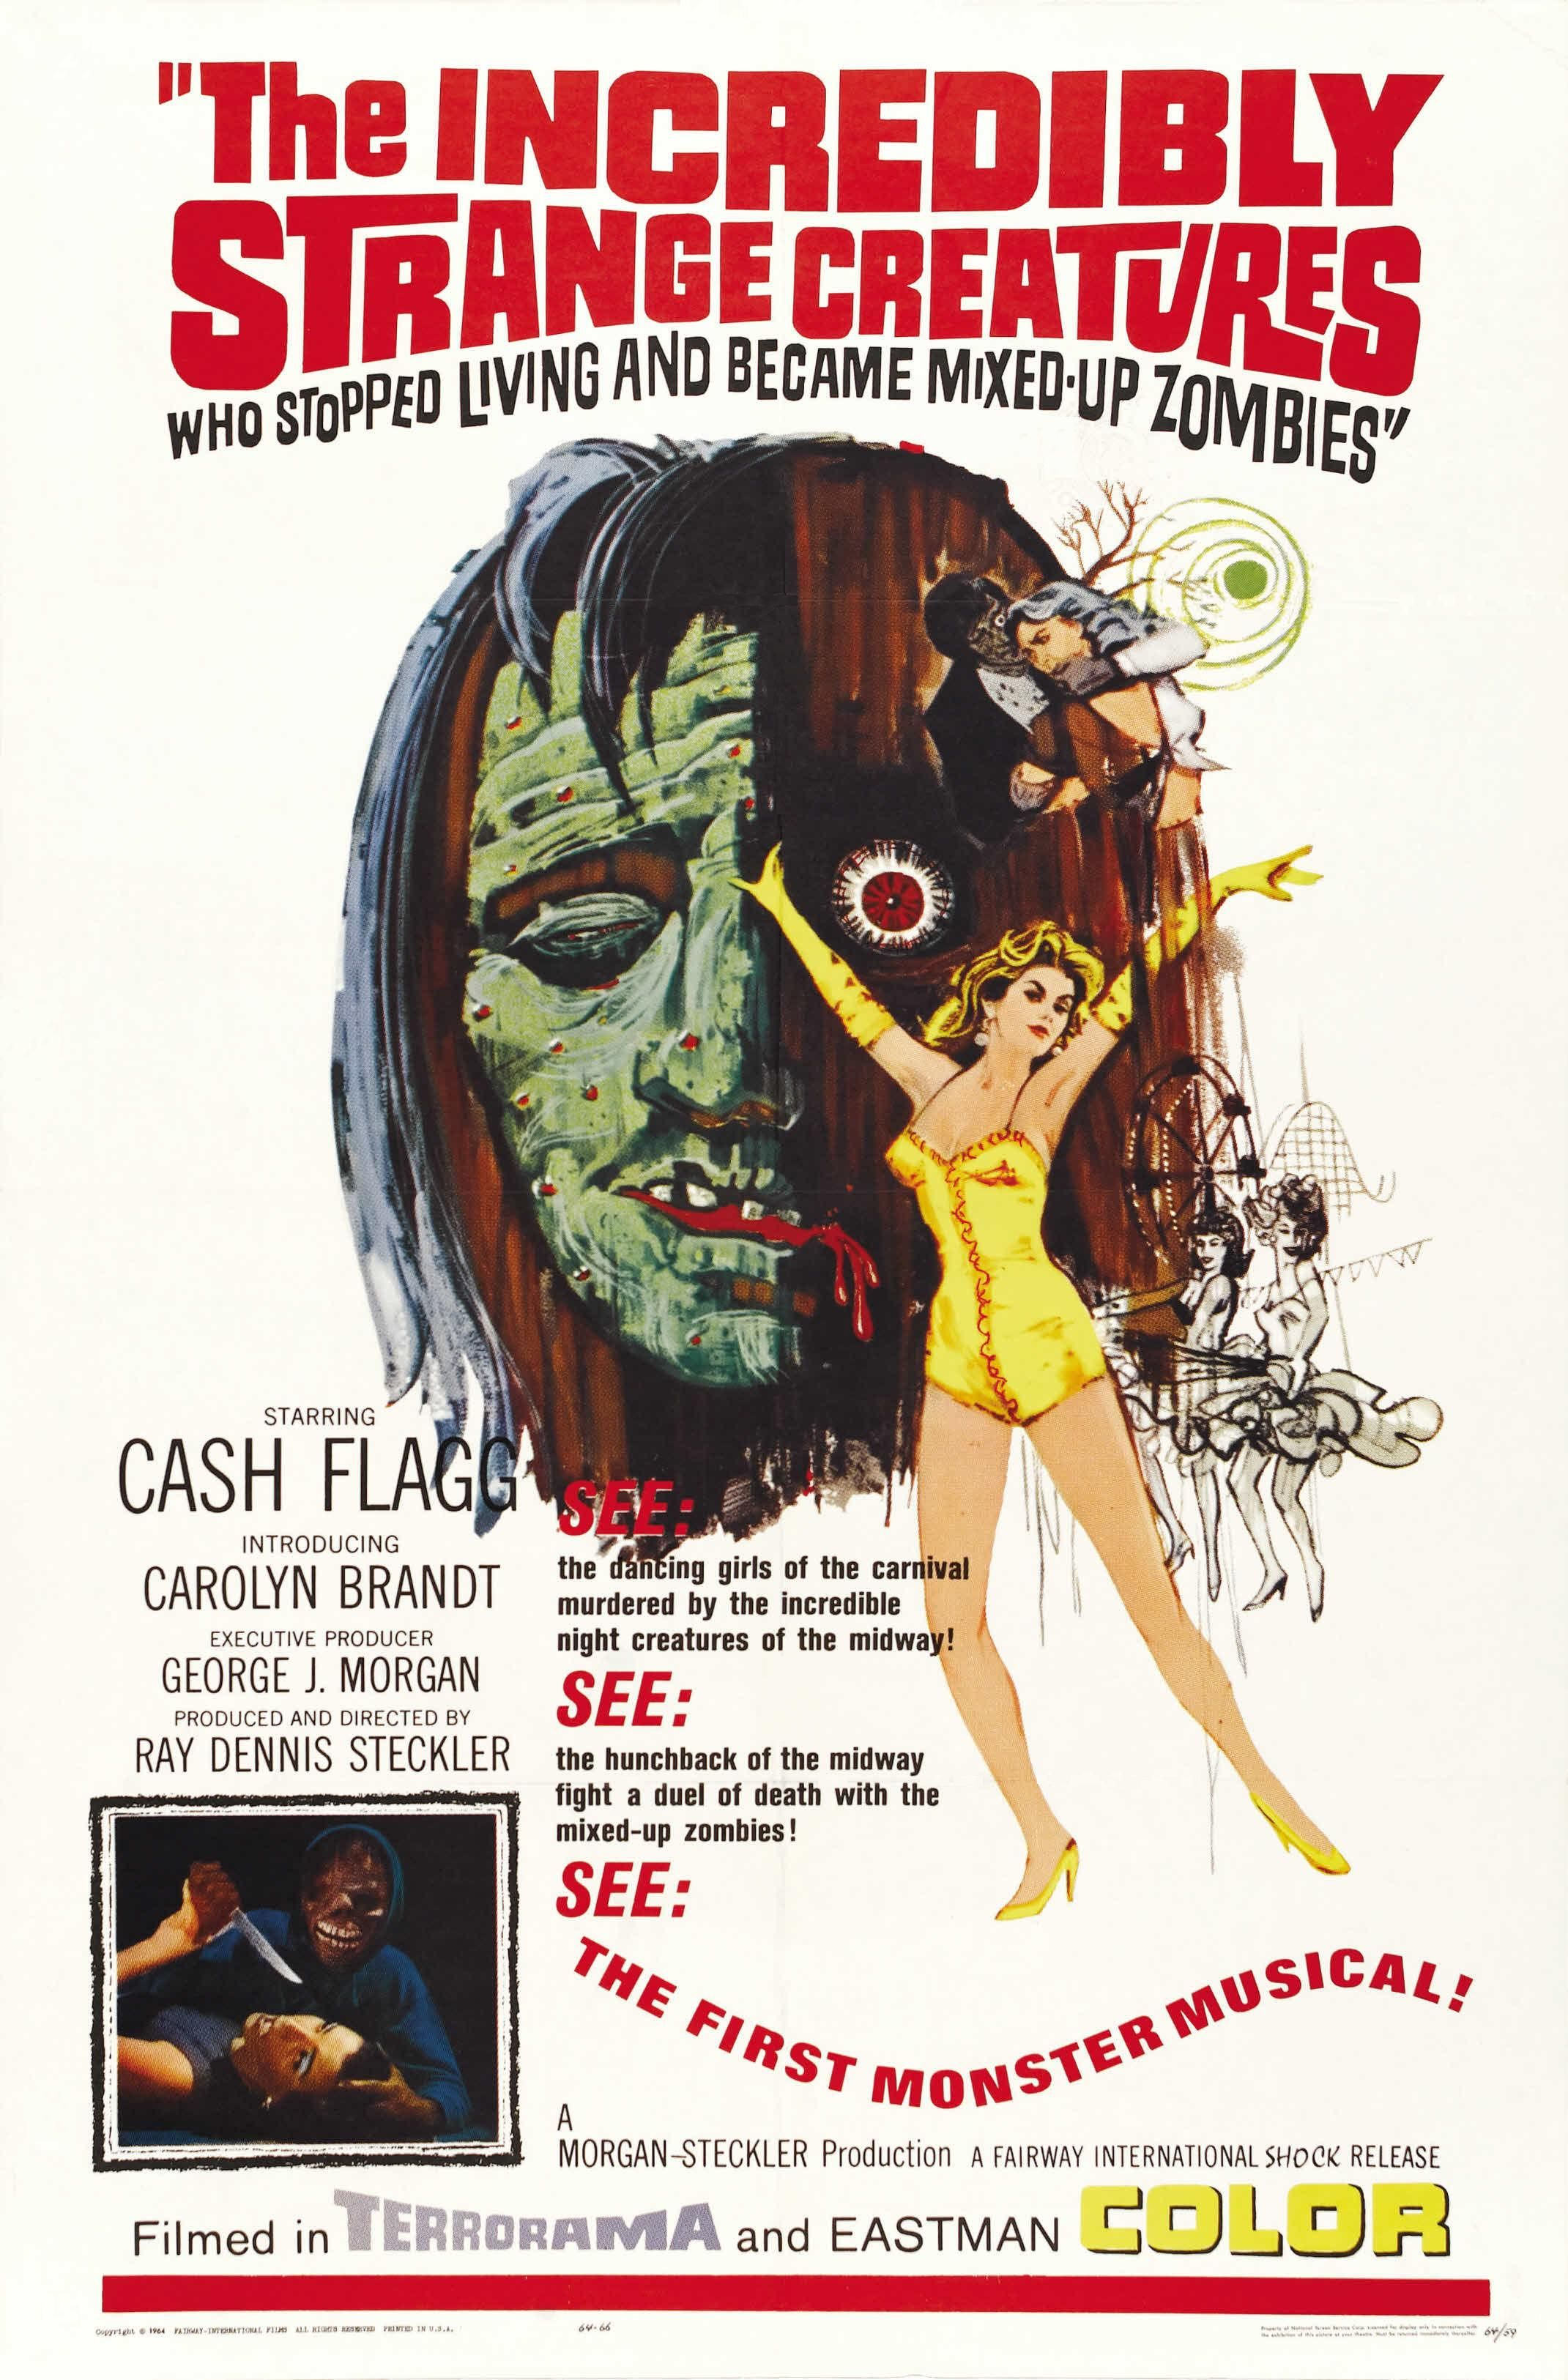 The Incredibly Strange Creatures...1964 Creature movie